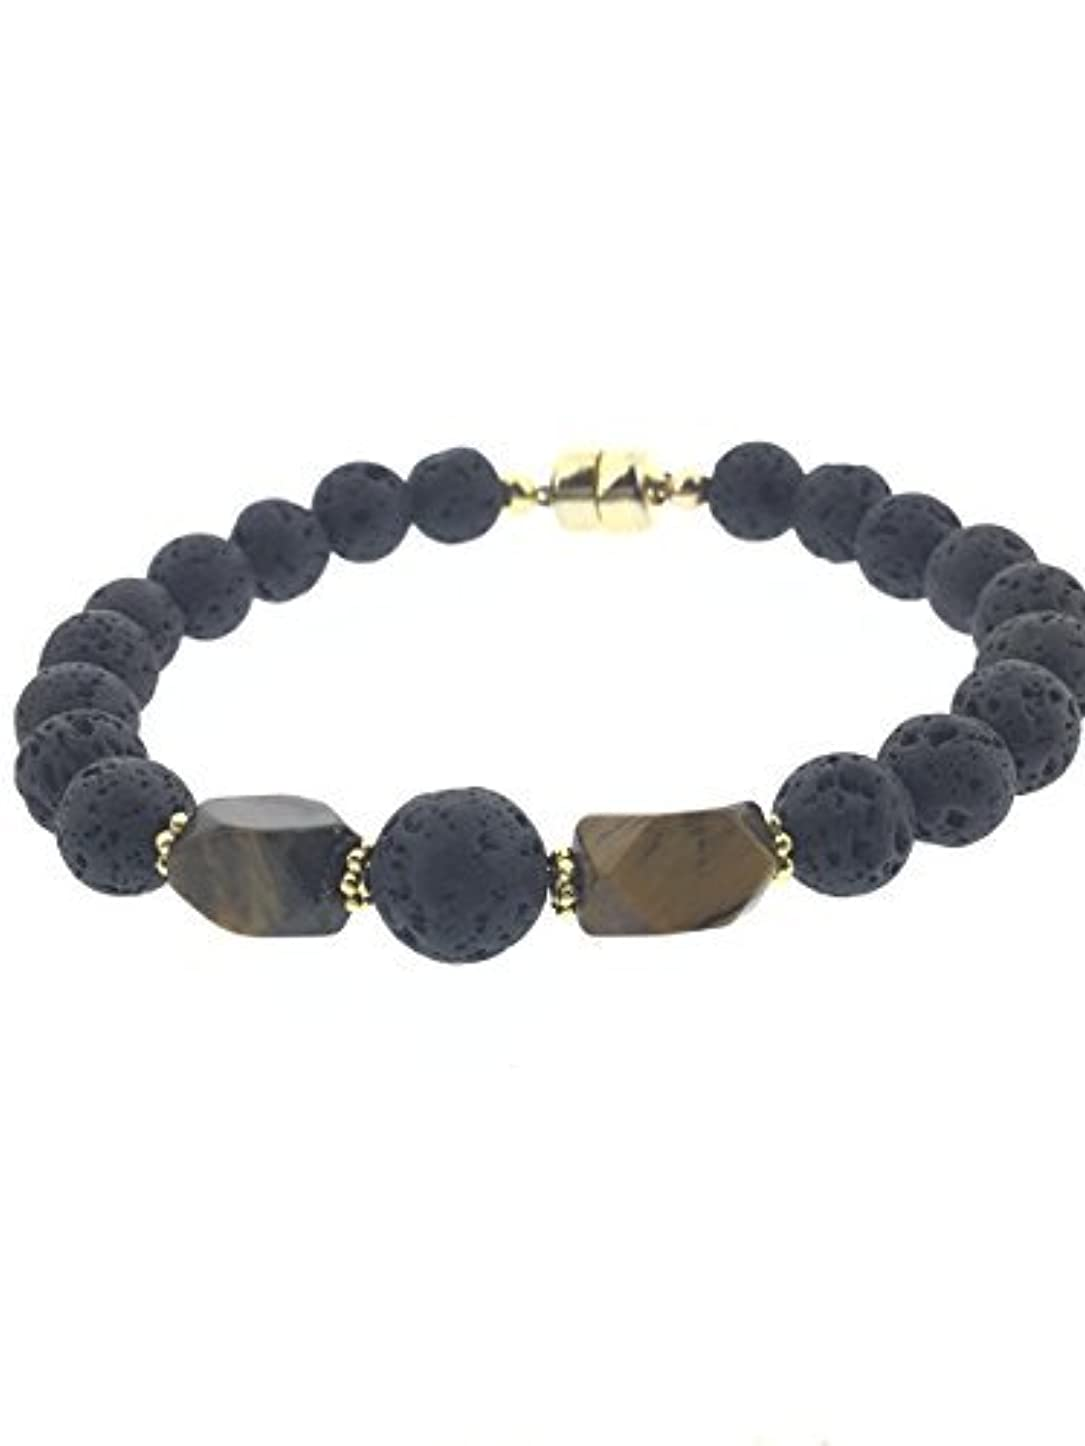 わずかなぶどう霊Tiger-eye and Lava Essential Oil Diffuser Bracelet with Gold-Filled Rare Earth Magnetic Clasp - SMALL [並行輸入品]